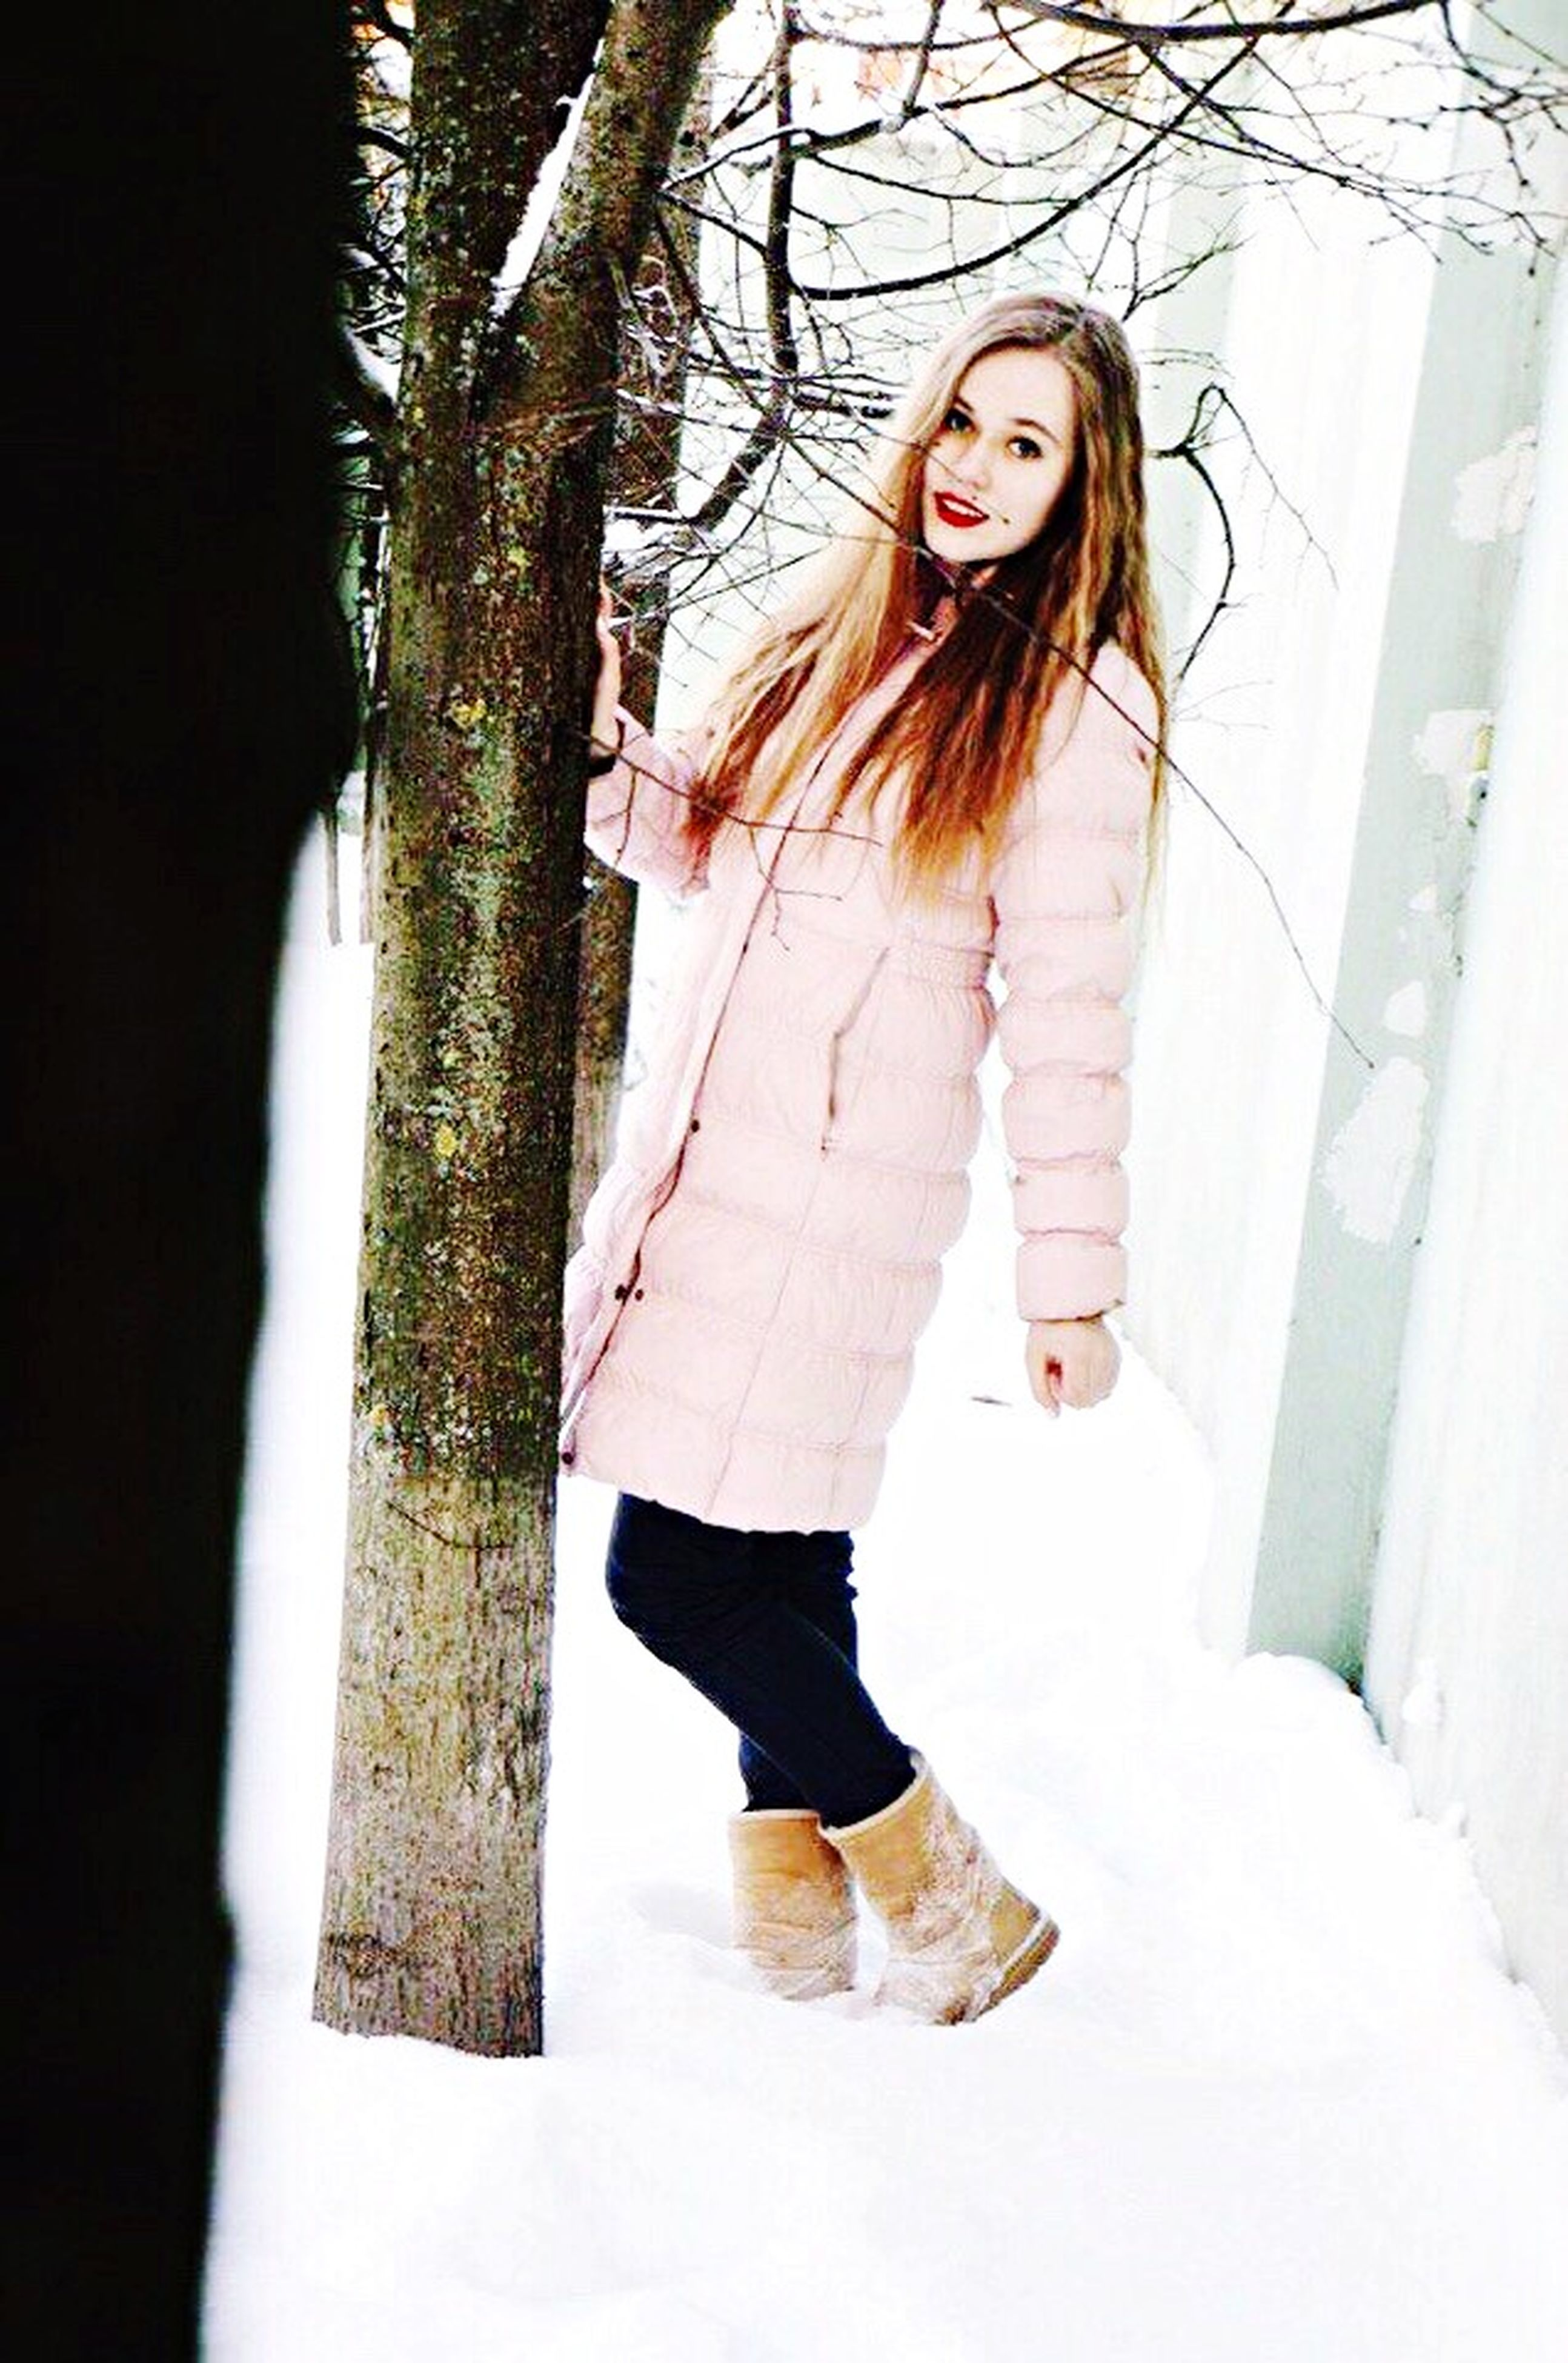 full length, lifestyles, young adult, standing, casual clothing, young women, leisure activity, winter, person, front view, long hair, snow, cold temperature, portrait, looking at camera, three quarter length, warm clothing